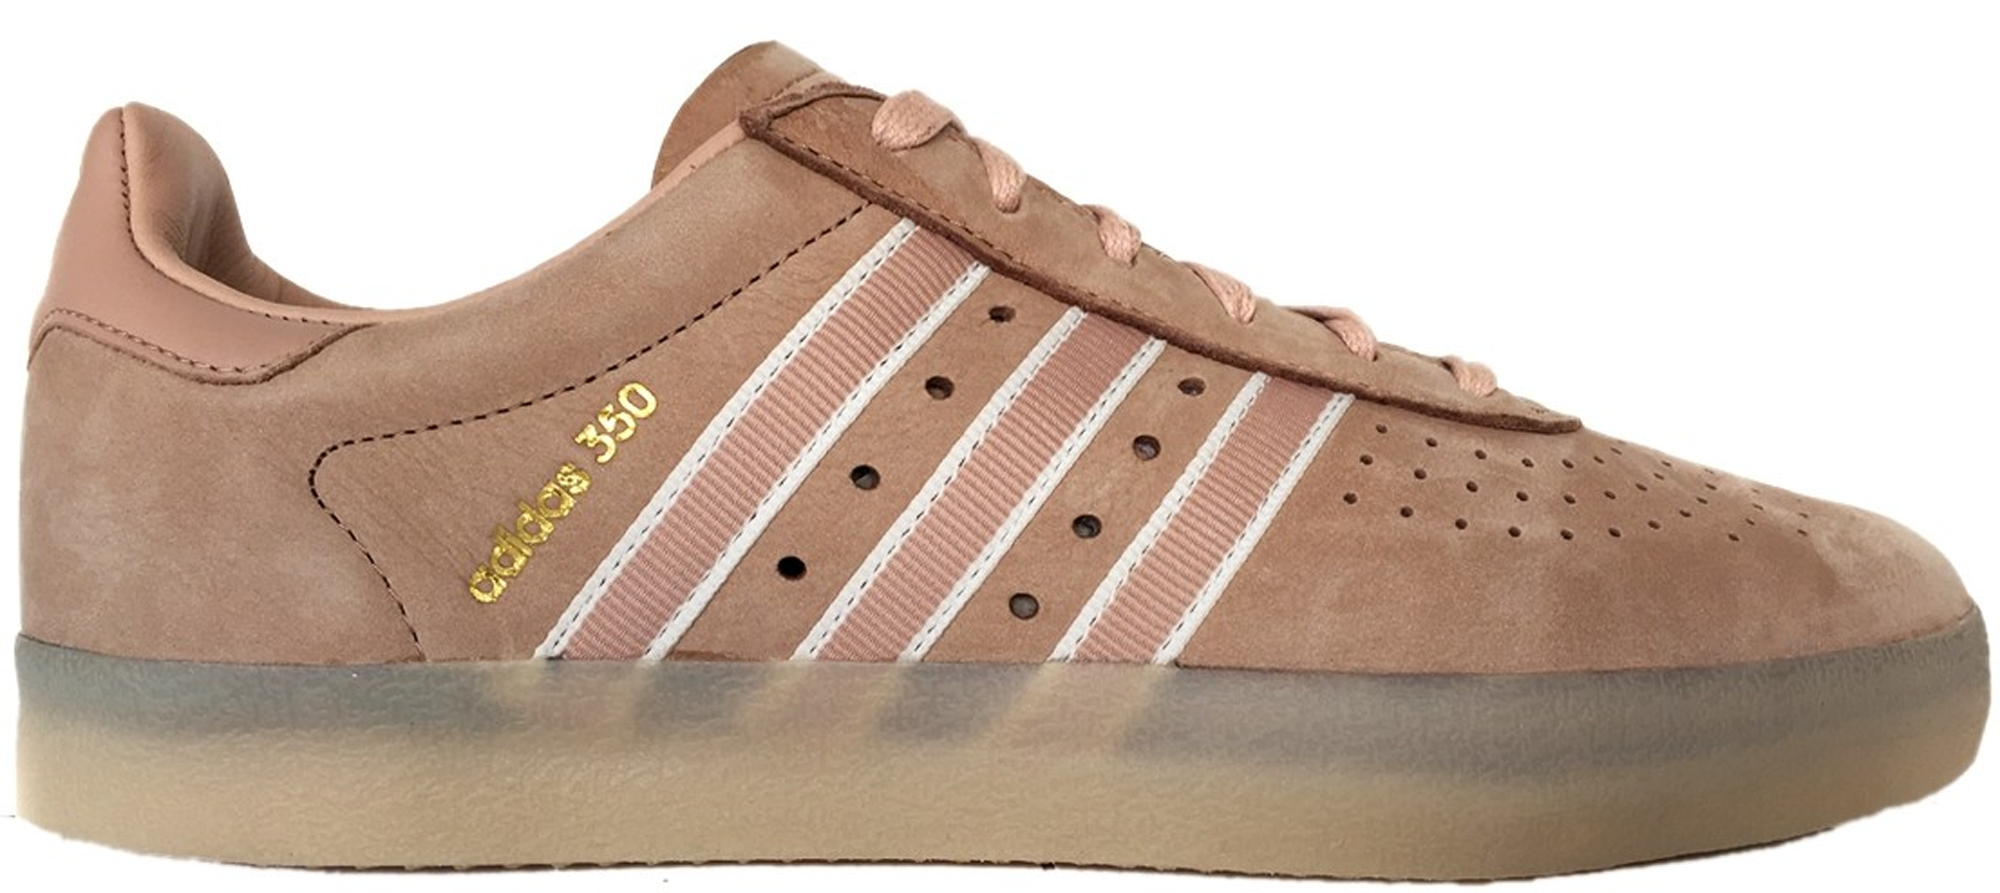 adidas 350 Oyster Holdings Ash Pearl